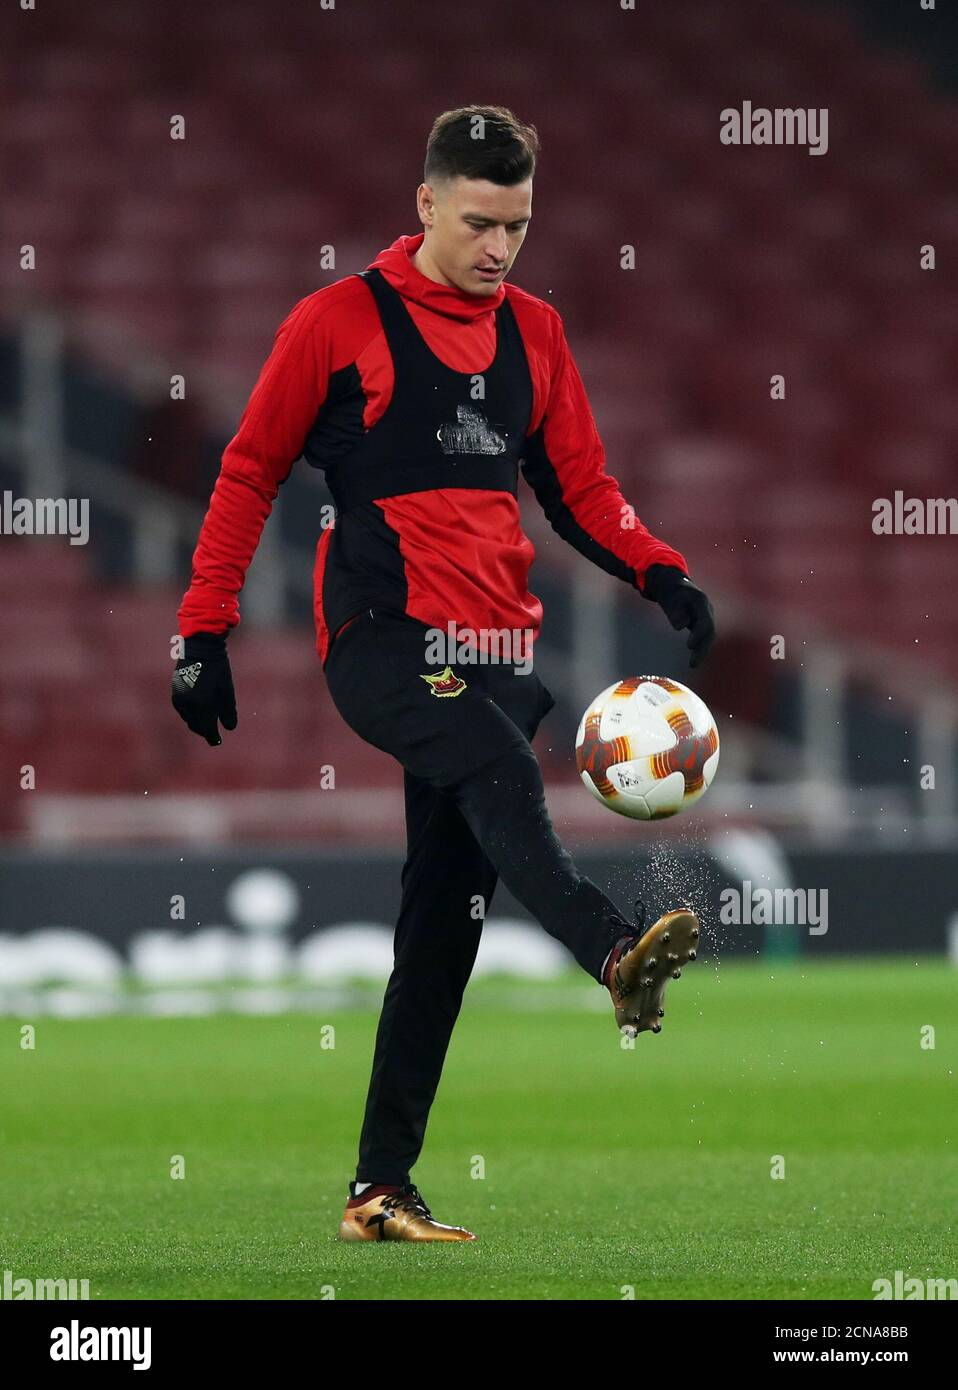 Soccer Football - Europa League - Ostersunds FK Training - Emirates Stadium, London, Britain - February 21, 2018   Ostersunds FK's Jamie Hopcutt during training   Action Images via Reuters/Peter Cziborra Stock Photo